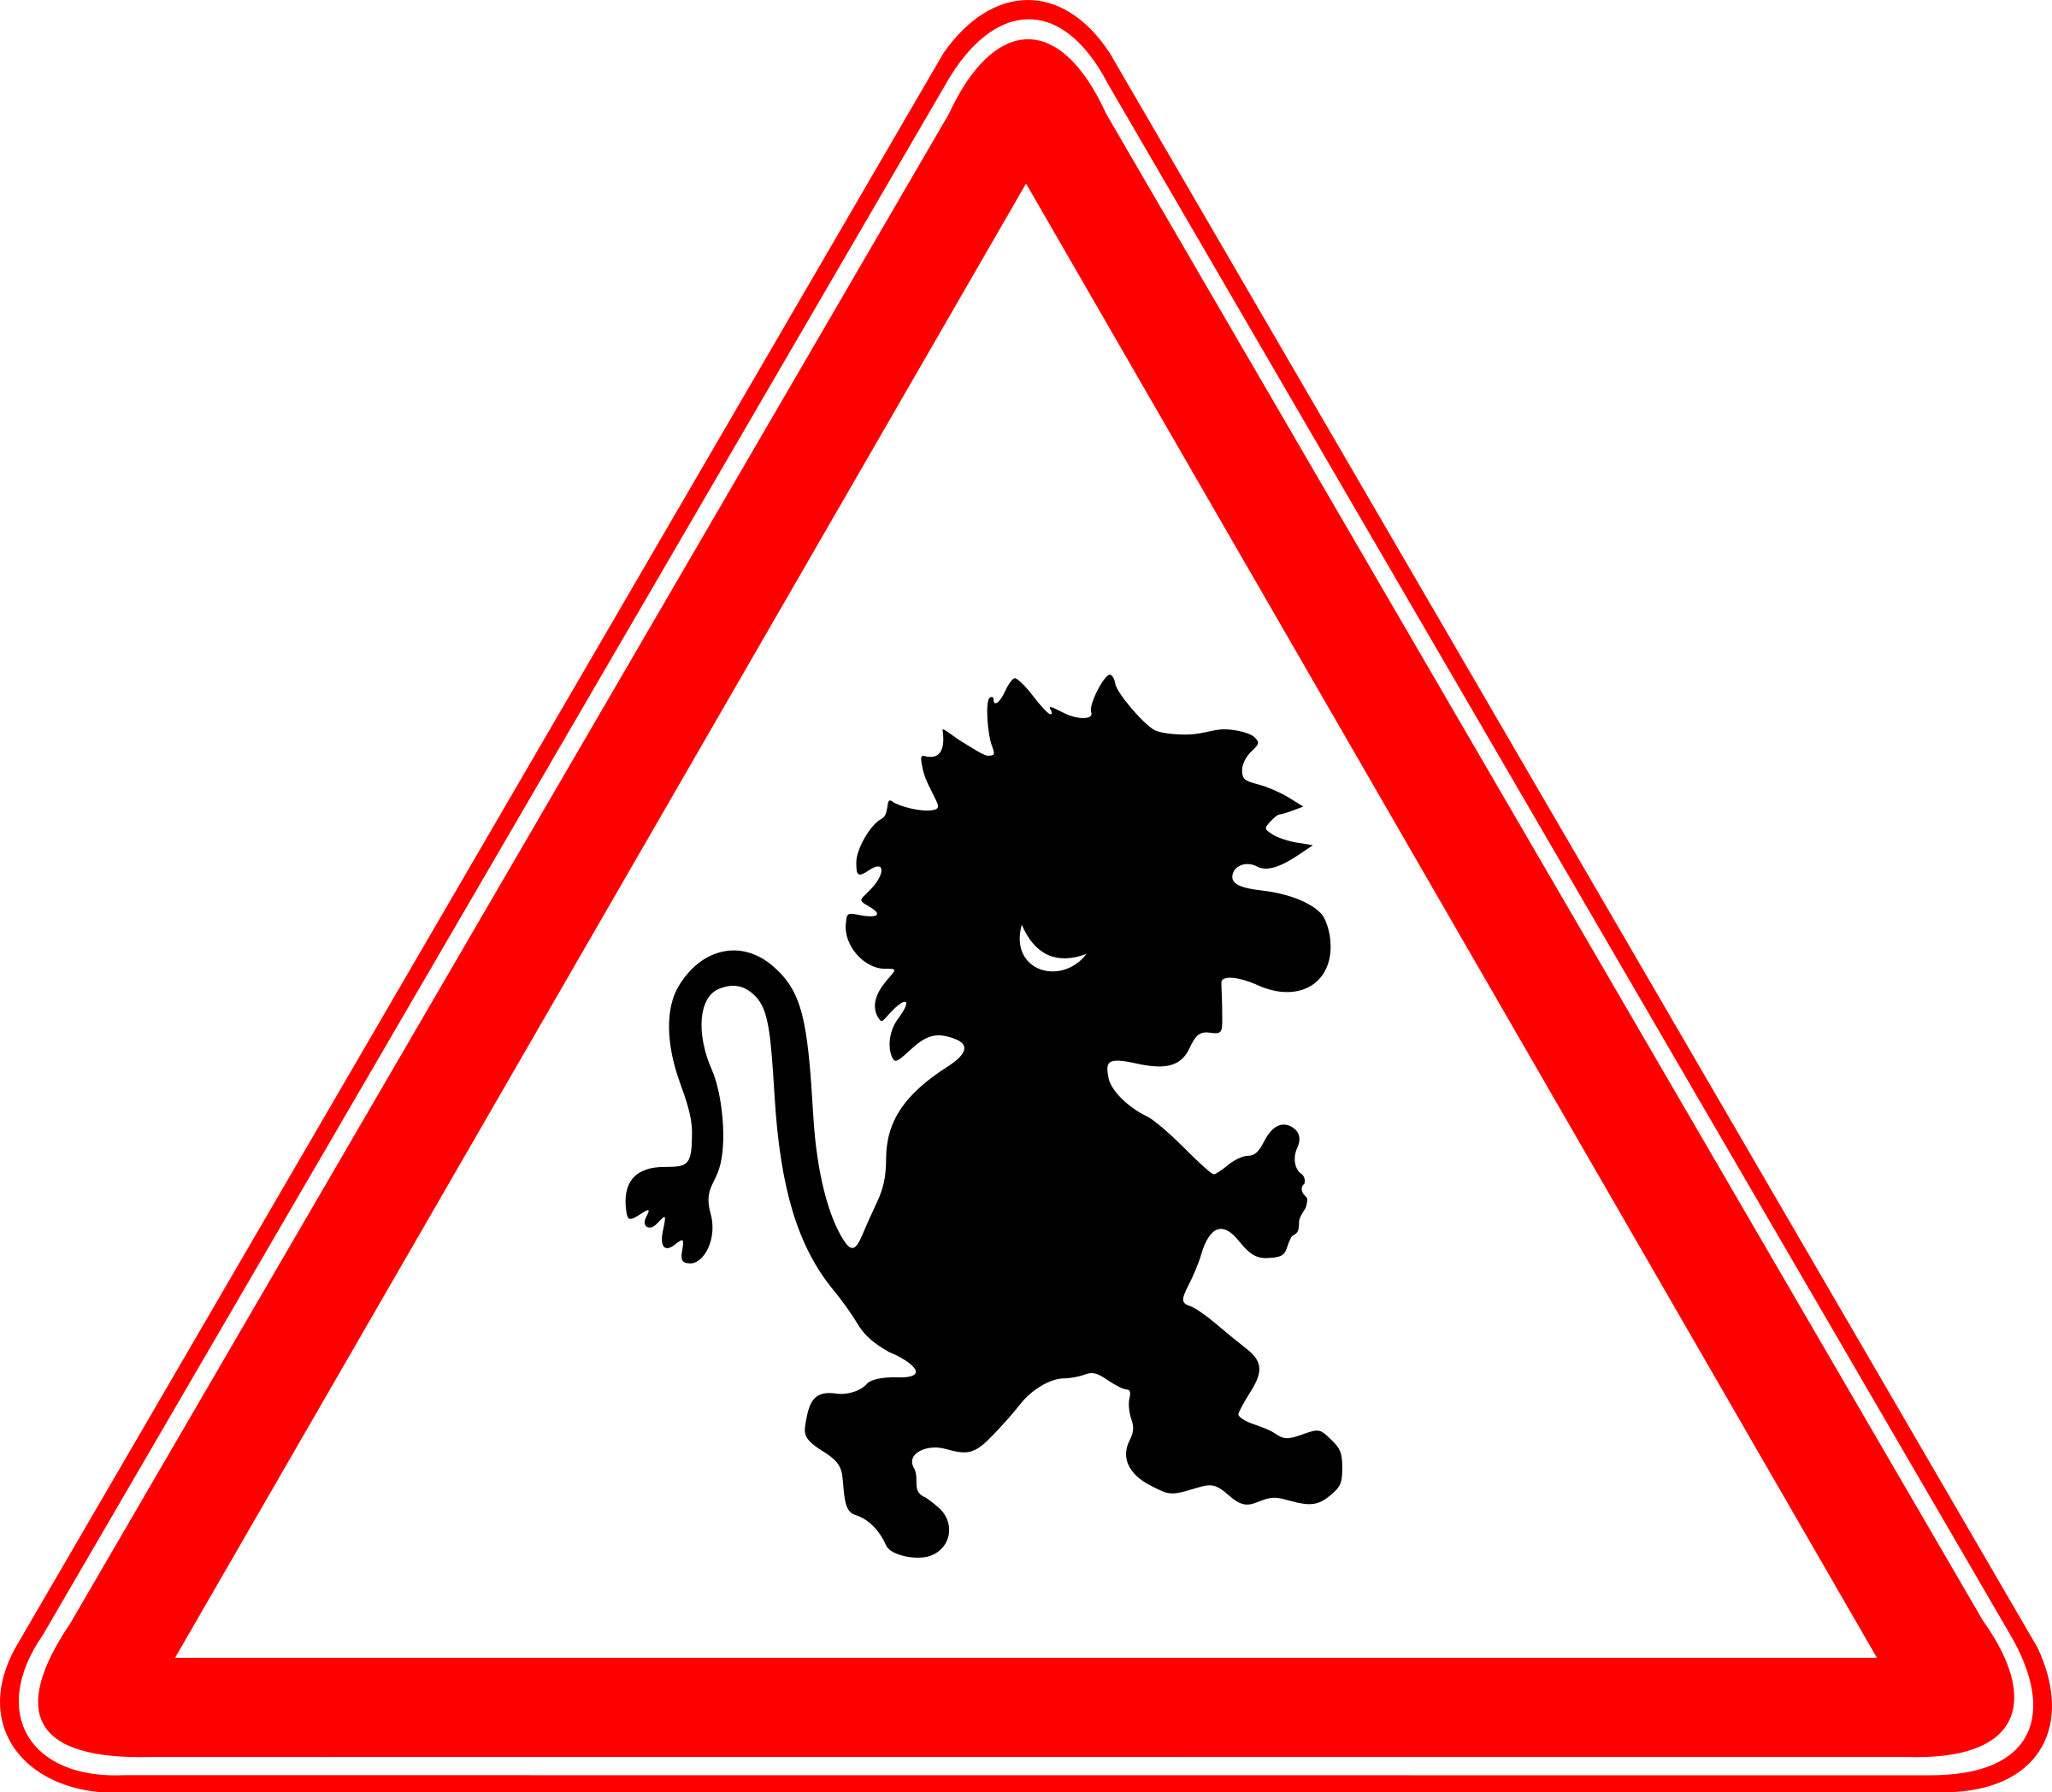 Beware of trolls sign by rones